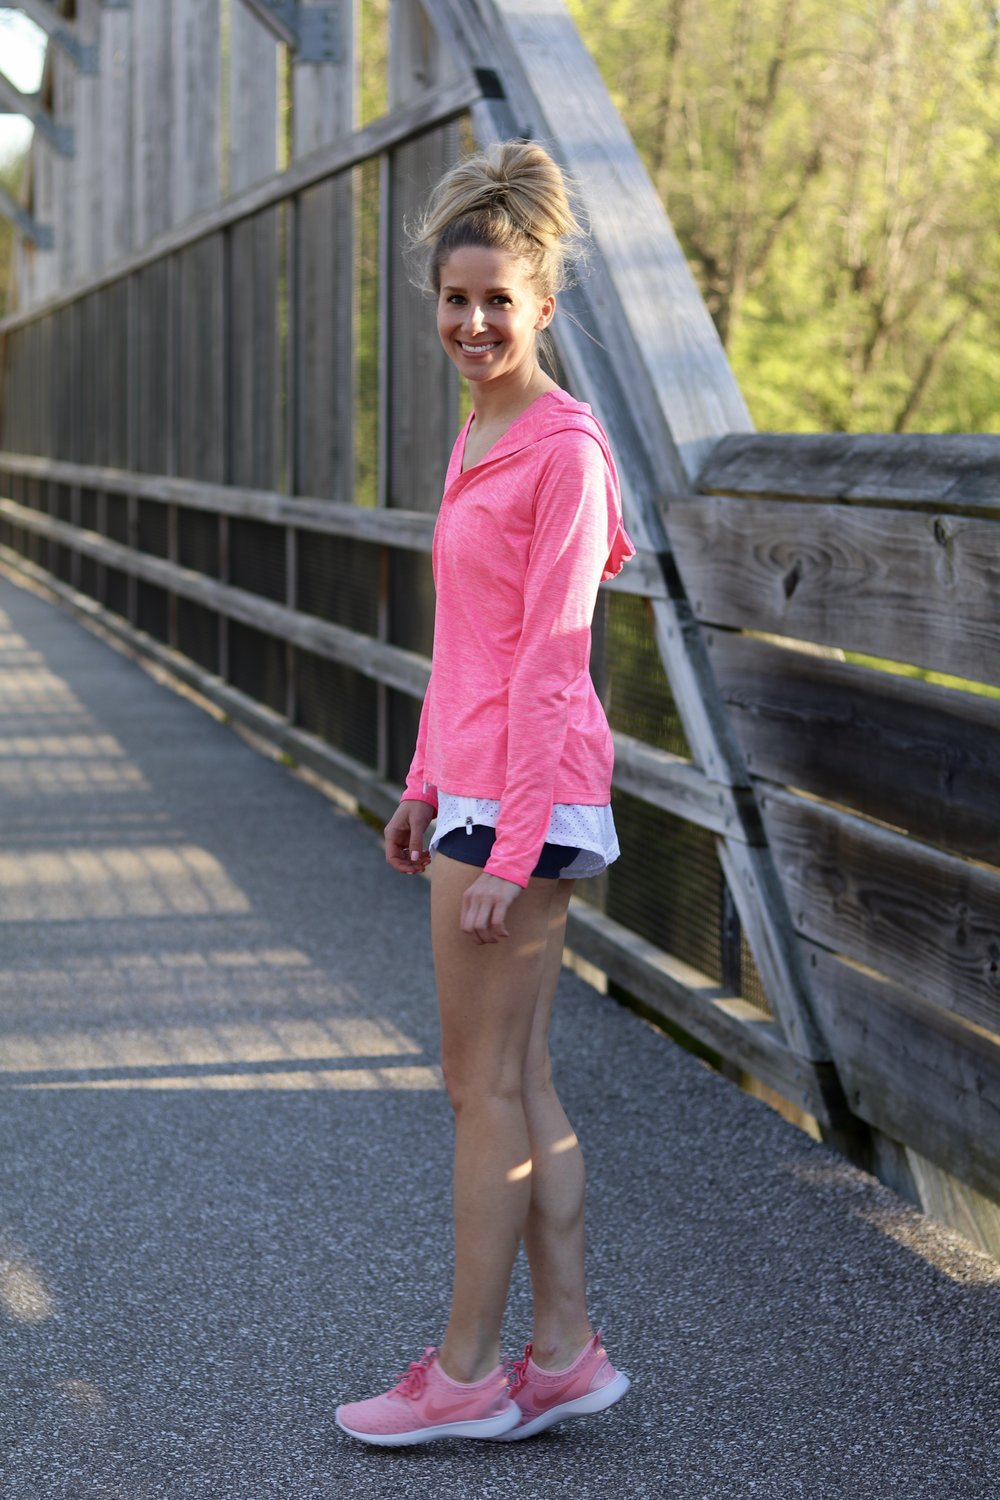 gilt edge | workout outfit